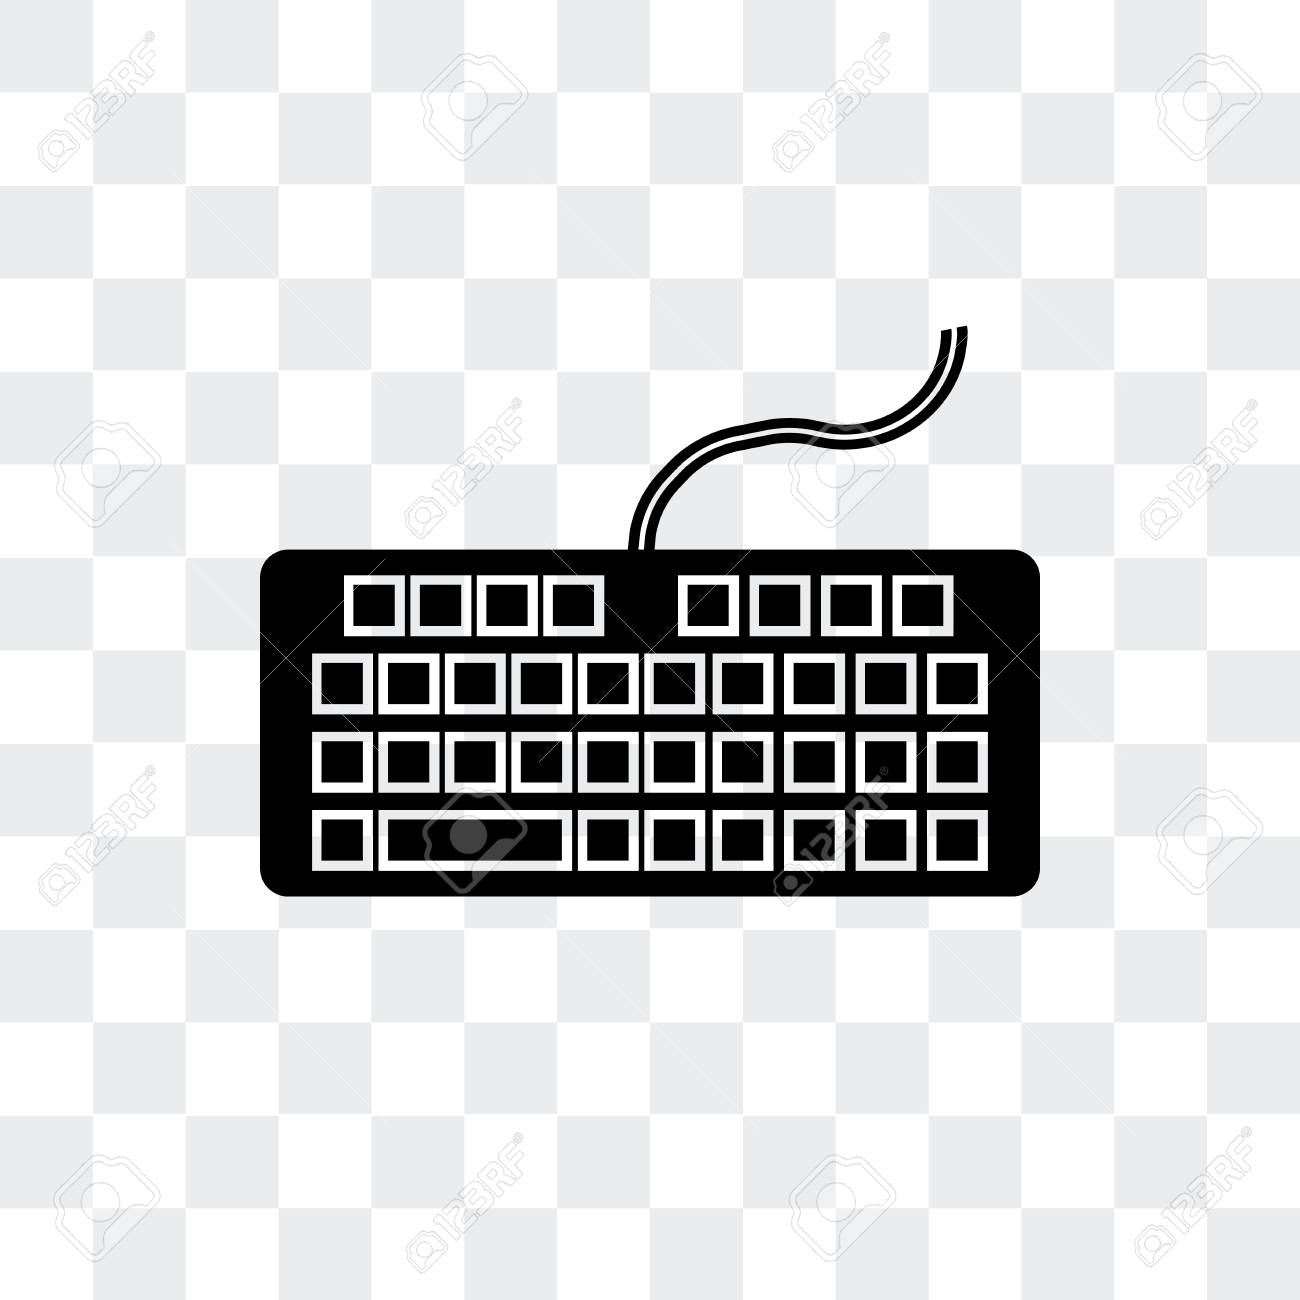 Keyboard Vector Icon Isolated On Transparent Background Keyboard Royalty Free Cliparts Vectors And Stock Illustration Image 107224660